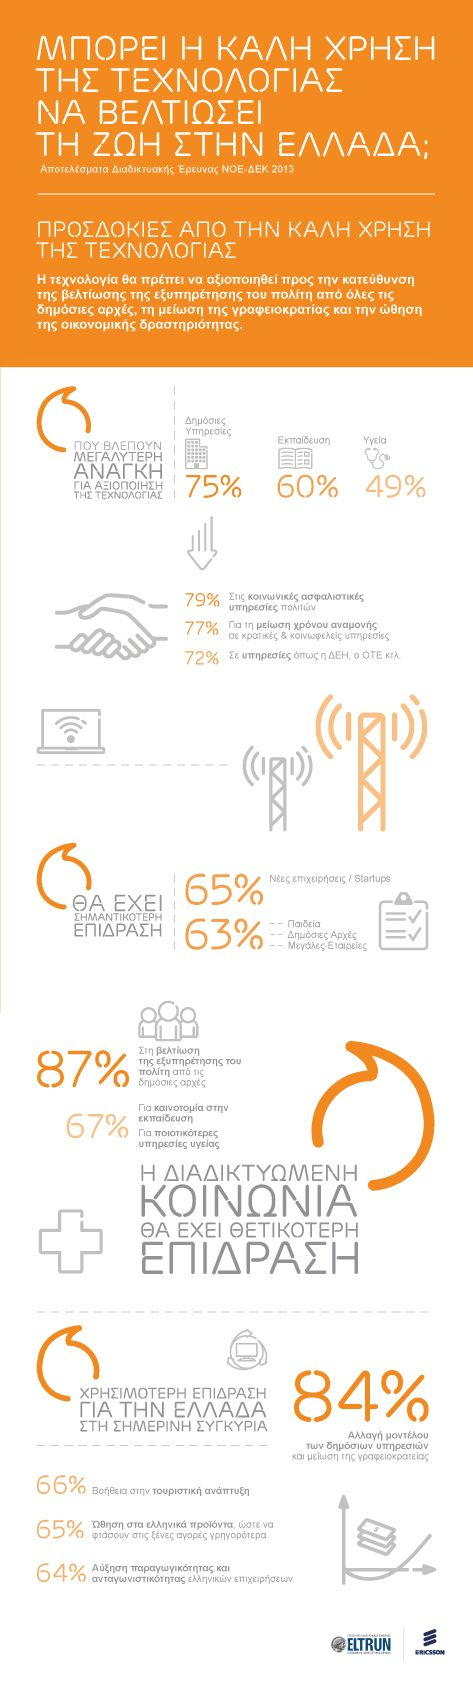 """Greek citizens online survey by @Eltrun and #Ericsson - """"How technology for good can improve our lives in Greece?"""" - infographic2"""